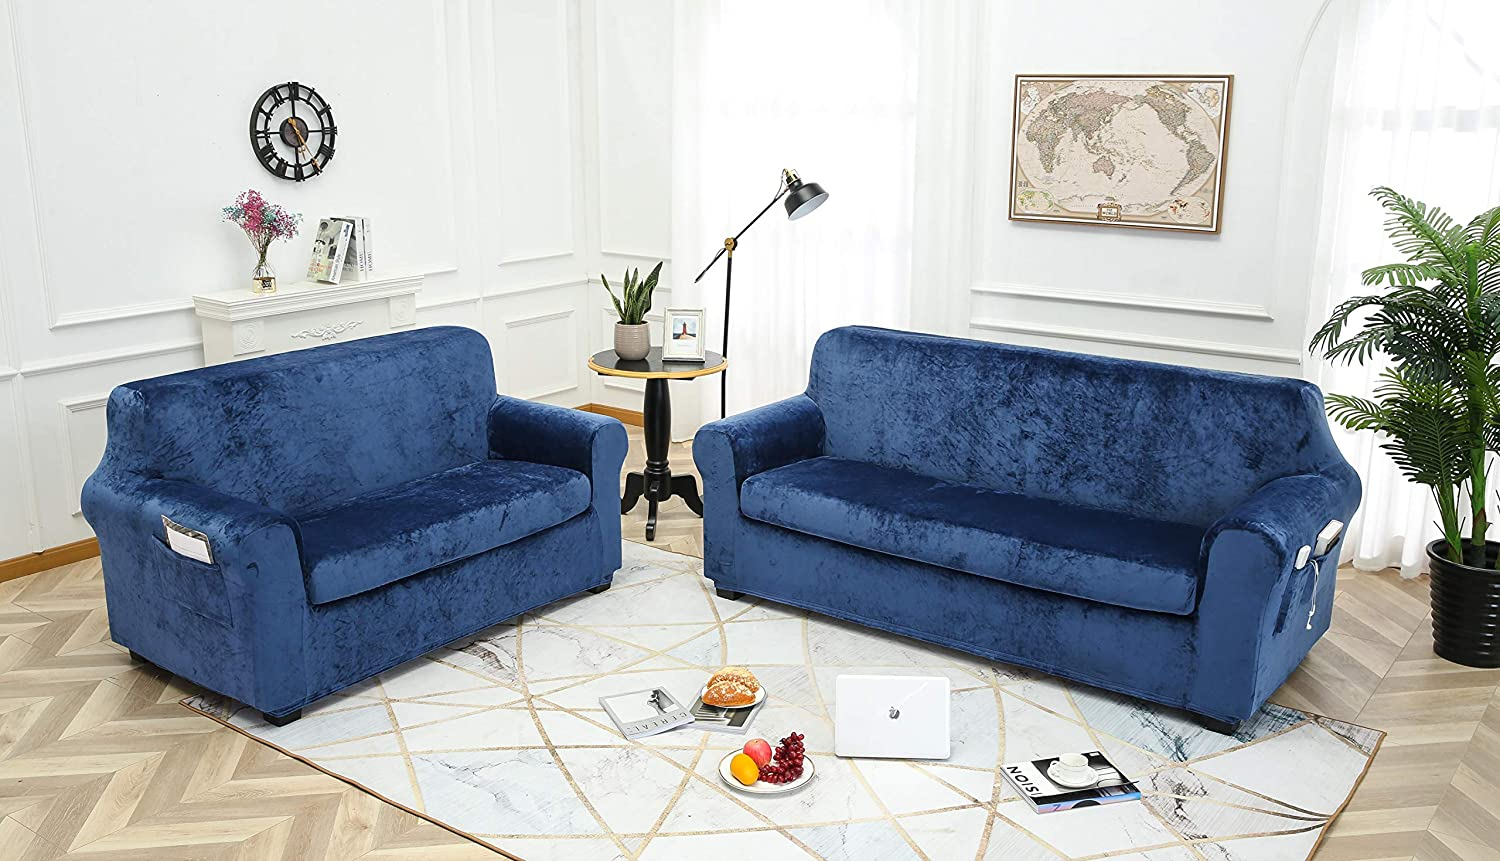 Stylish Luxury Furniture Covers with Utility Pockets (Sofa, Aegean Blue)